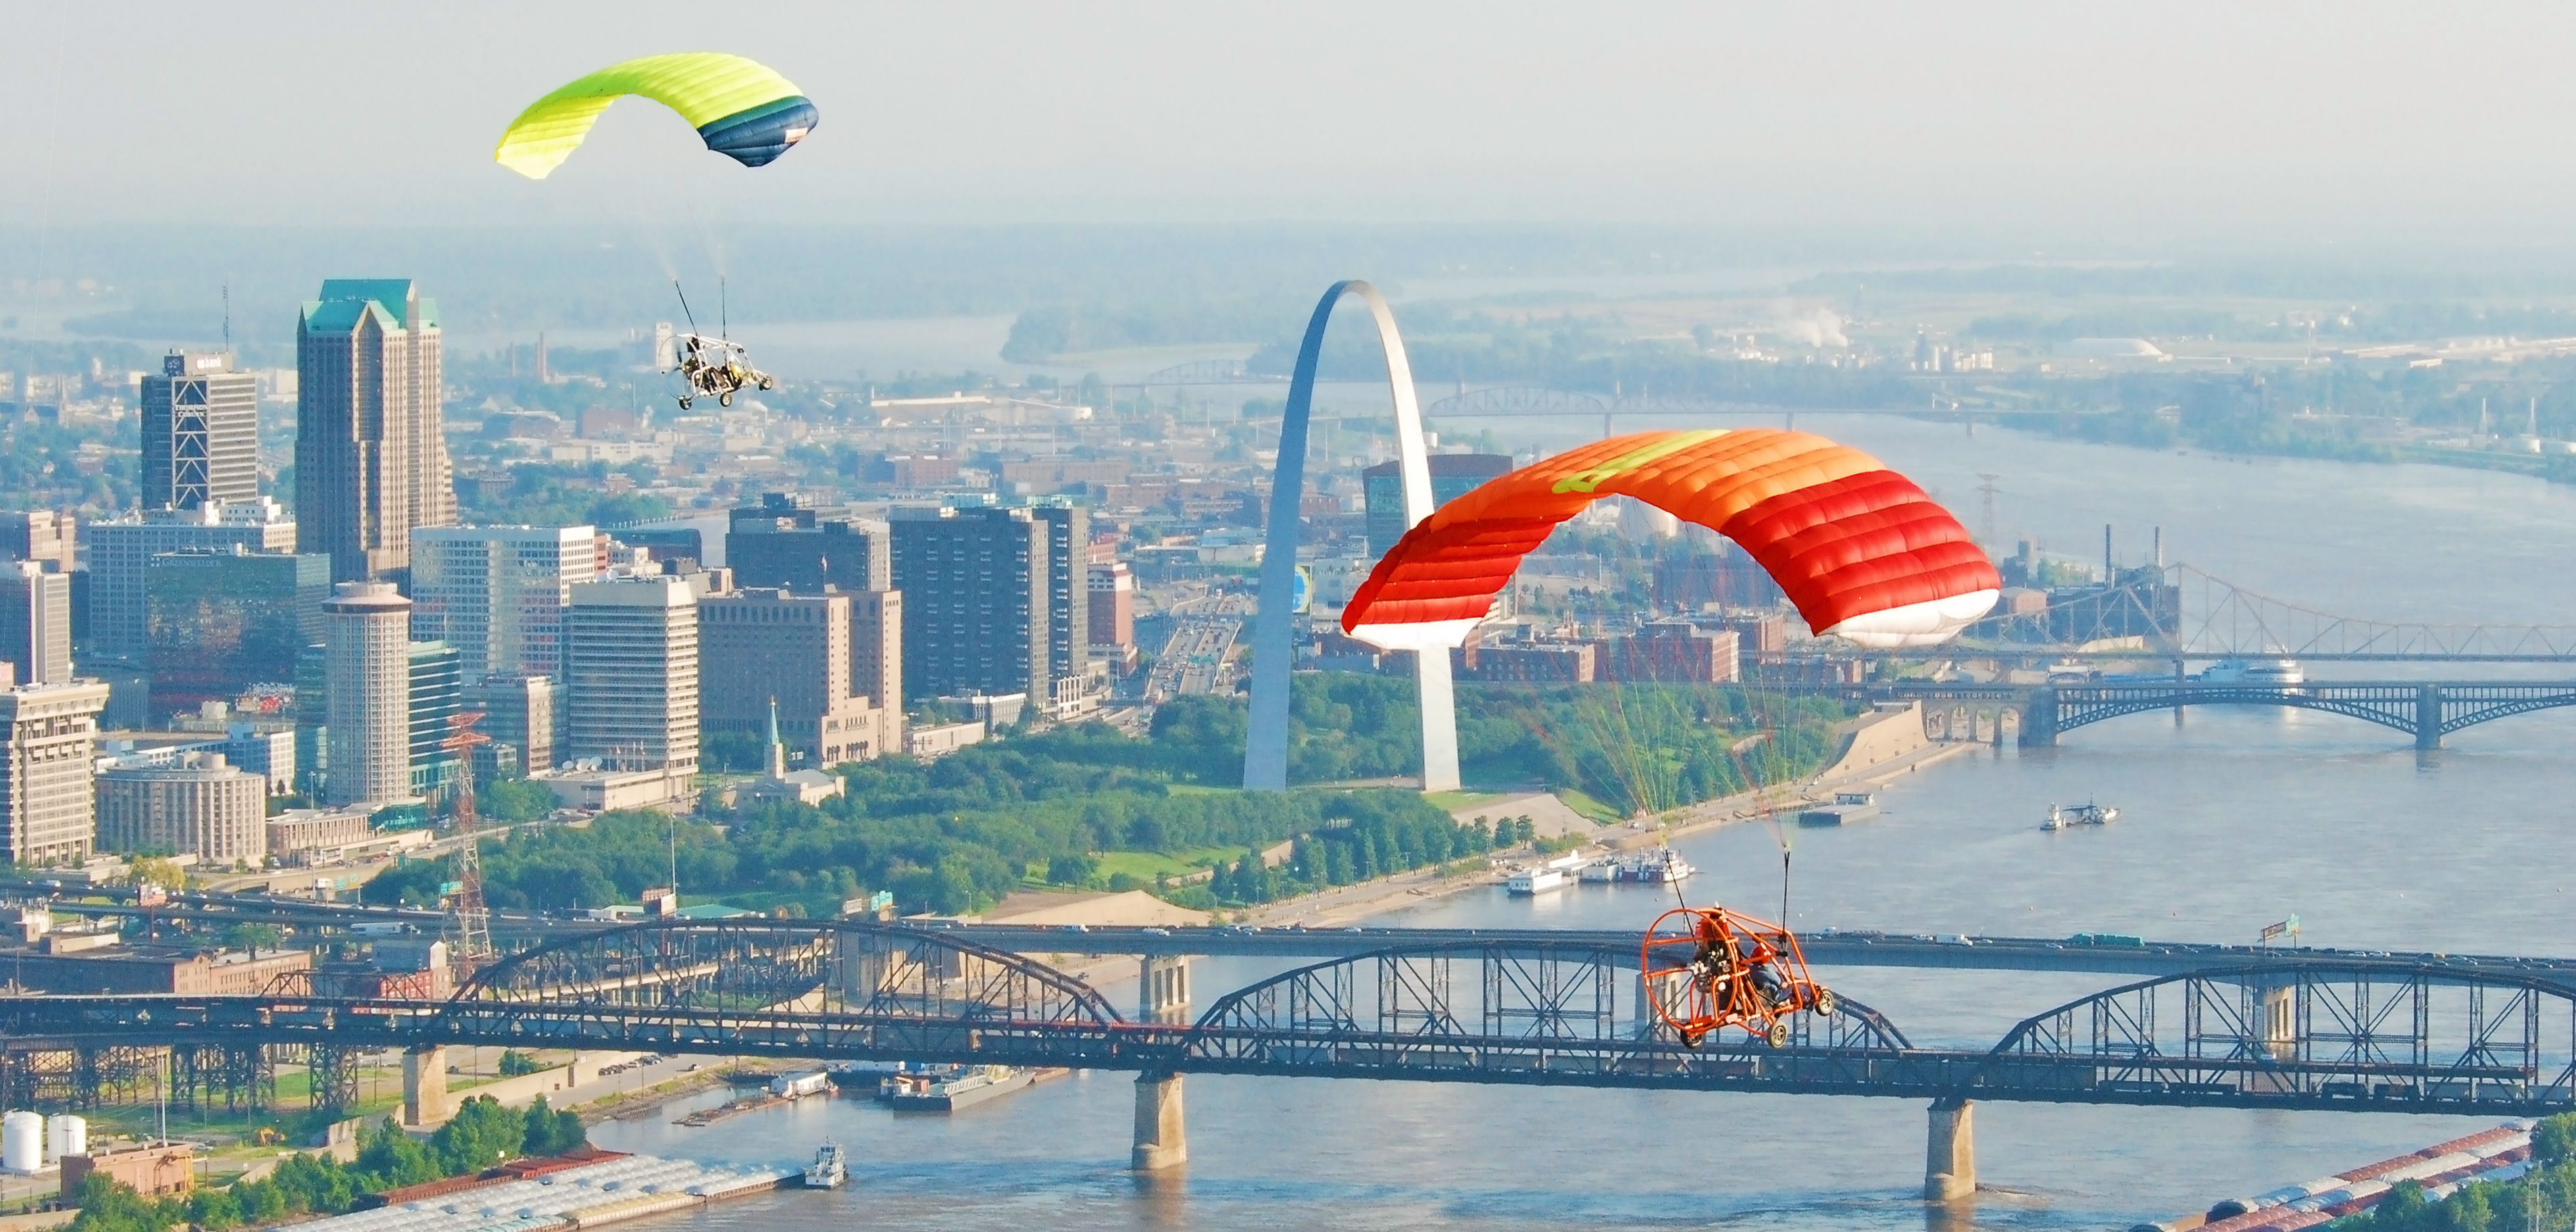 Powered Parachutes Flying by the St. Louis Gateway Arch